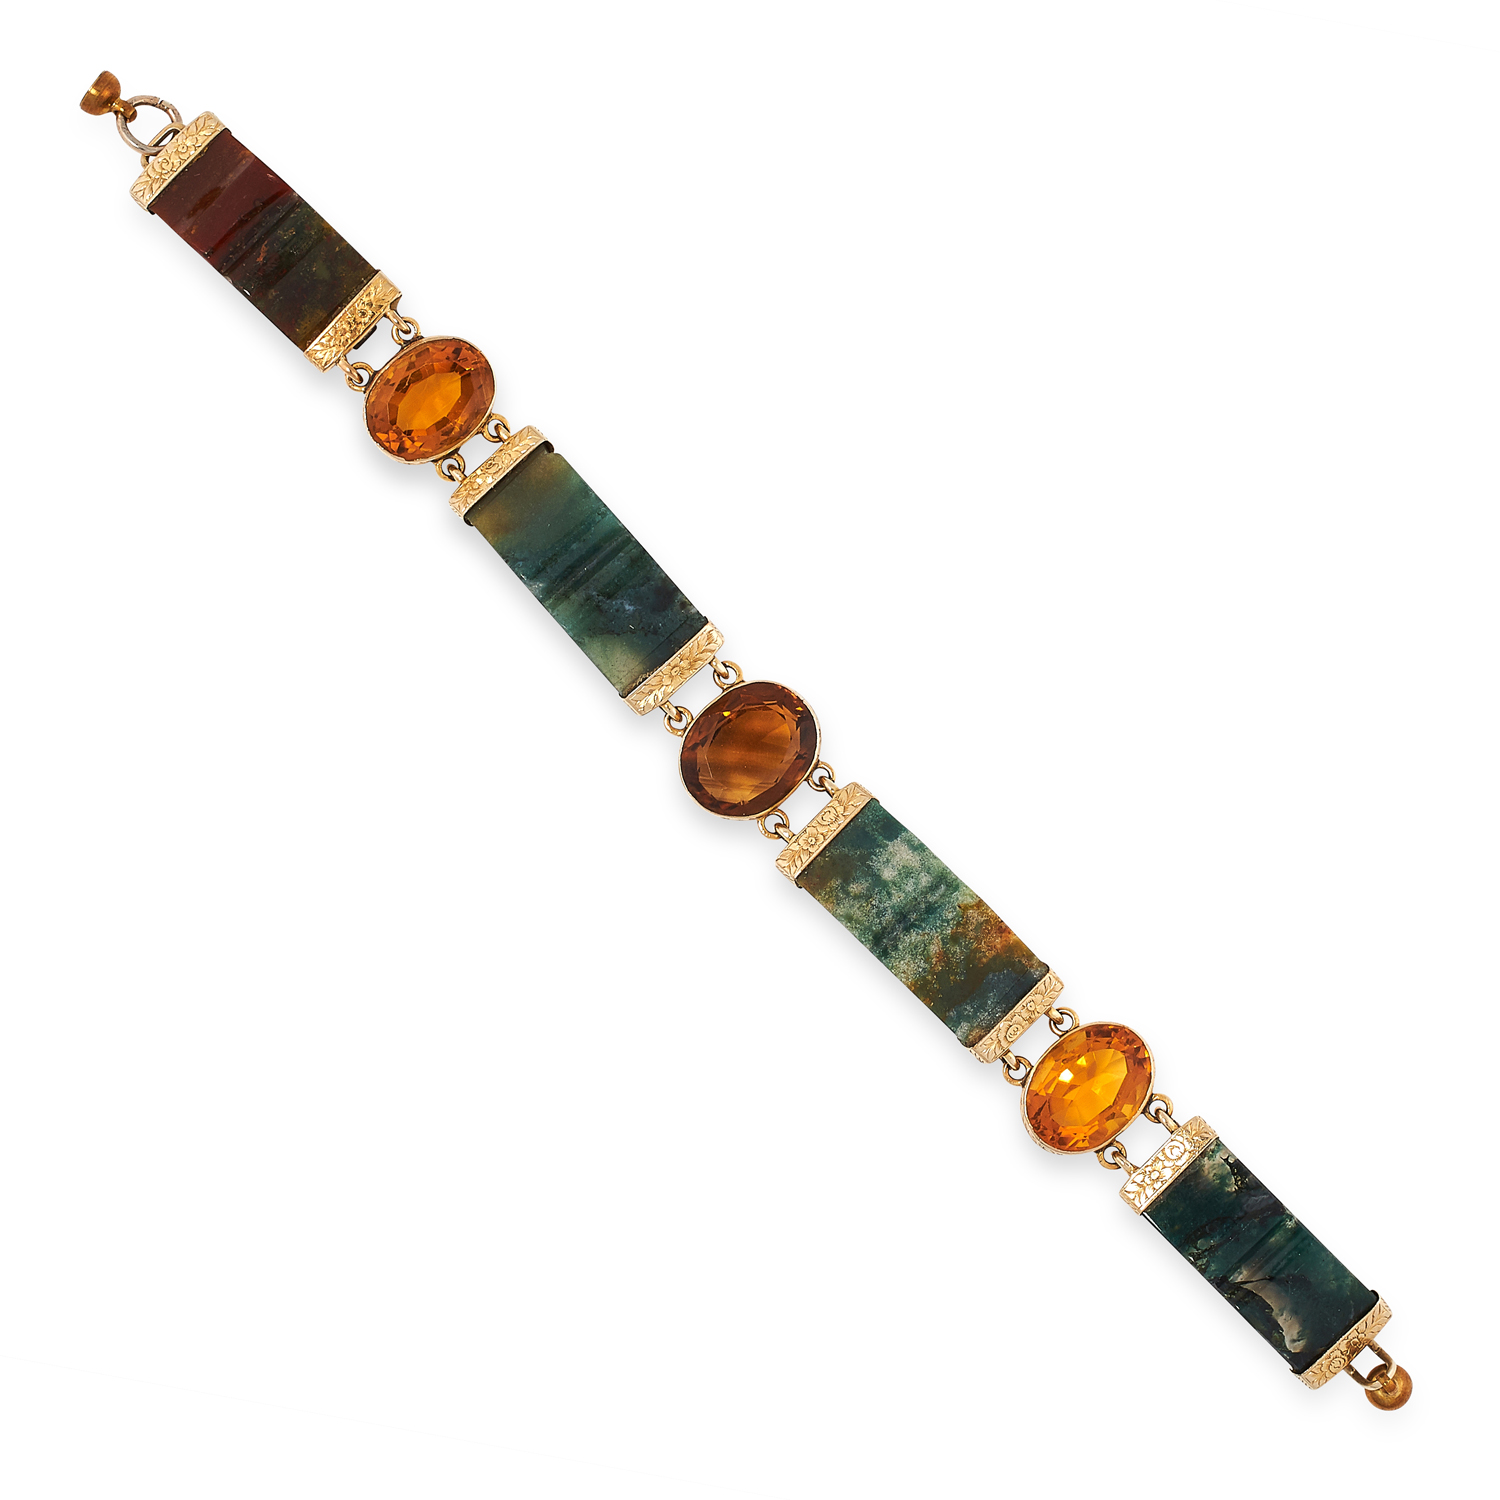 AN ANTIQUE SCOTTISH HARDSTONE AND CITRINE BRACELET comprising of carved and polished pieces of